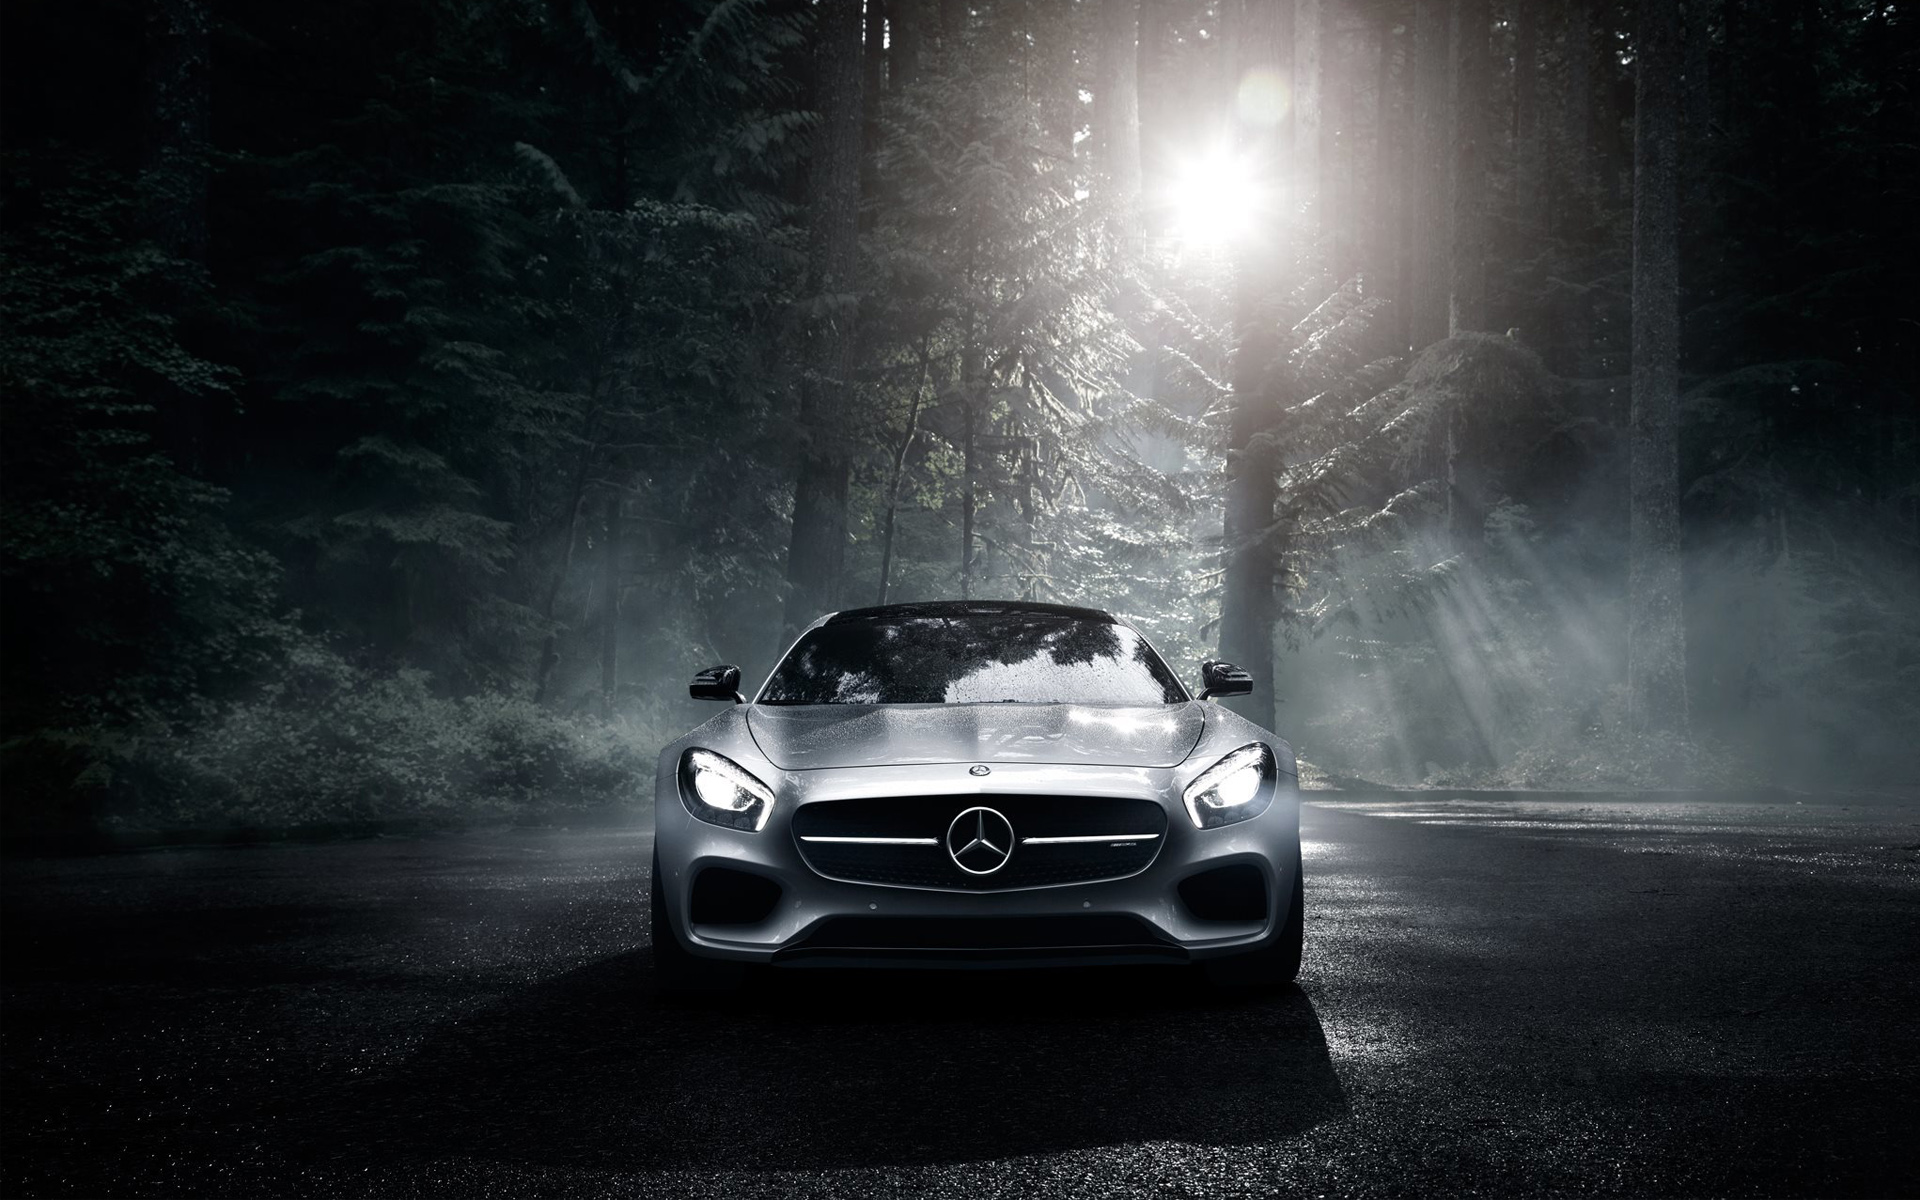 2016 Mercedes Benz AMG GT S Full HD Wallpaper and 1920x1200